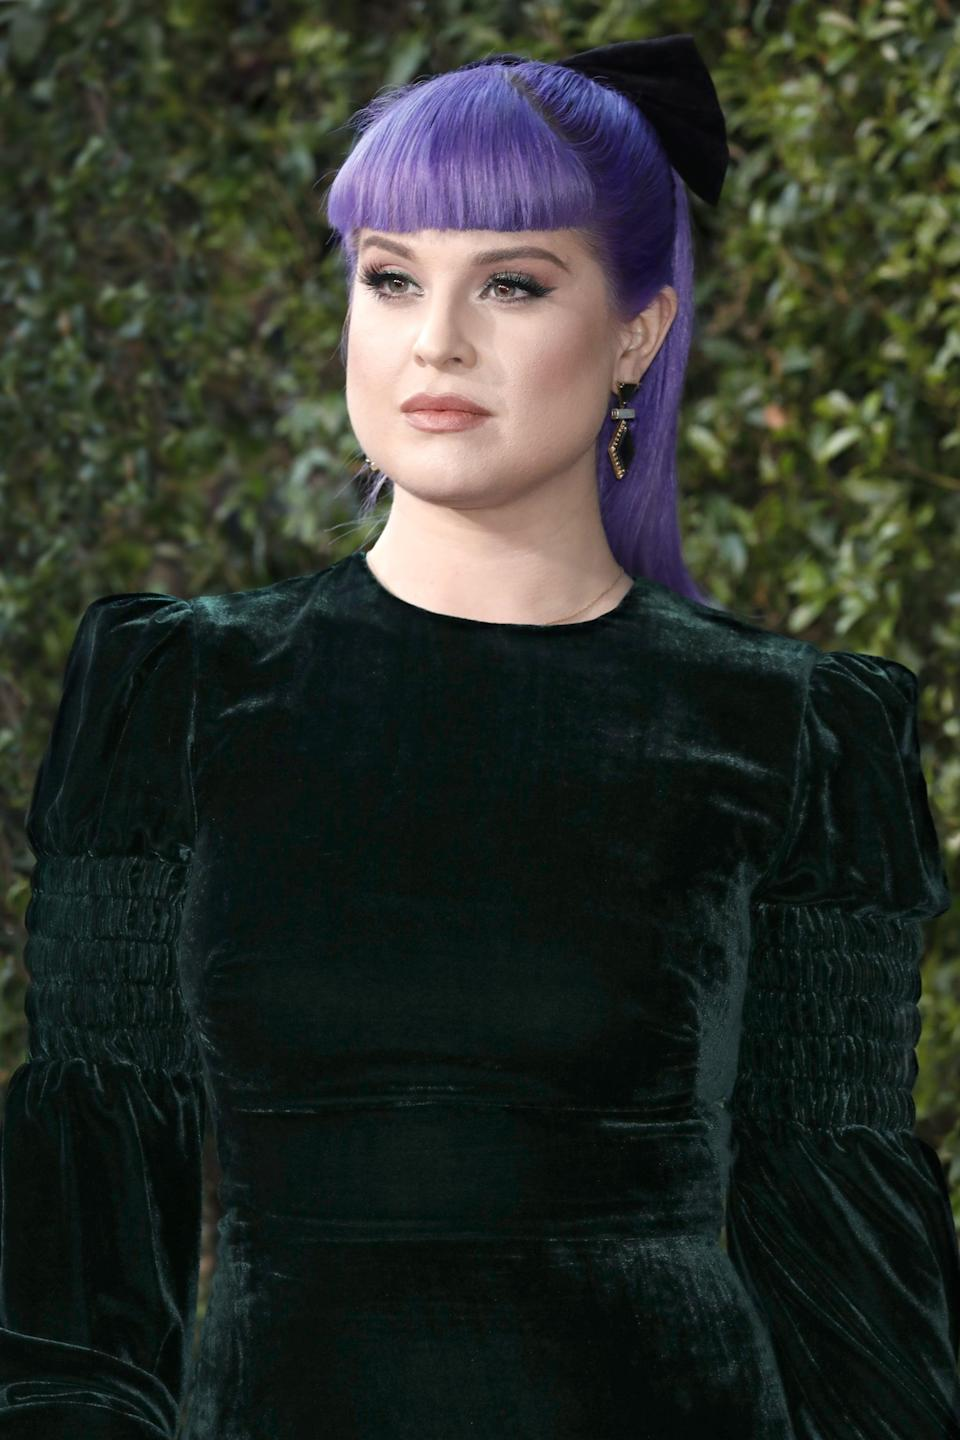 """<p>In 2010, Kelly Osbourne revealed that she'd be having the majority of the 15 tattoos she had at the time removed, citing <a href=""""https://www.usmagazine.com/stylish/news/kelly-osbourne-why-im-removing-most-of-my-15-tattoos-2010610/"""" class=""""link rapid-noclick-resp"""" rel=""""nofollow noopener"""" target=""""_blank"""" data-ylk=""""slk:some of them simply had no deeper meaning"""">some of them simply had no deeper meaning</a>. """"I was miserable and I just went and got all these tattoos and I don't know why,"""" she said. """"One of them is a keyboard and I don't even know how to play a piano!""""</p> <p>The star added: """"As you get older, you realize that you don't want to be defined by your tattoos, because that's not the type of person that I am.""""</p> <p>That was 10 years ago, but Osbourne isn't quite done with the removal process yet. Last year, <a href=""""https://www.instagram.com/p/CGDpyeHFsHT/"""" class=""""link rapid-noclick-resp"""" rel=""""nofollow noopener"""" target=""""_blank"""" data-ylk=""""slk:she shared an Instagram gallery"""">she shared an Instagram gallery</a> showing the process of her getting two of the tattoos removed: the aforementioned piano and the word """"lovely"""" written in cursive.</p> <p>""""Who else knows how bad this hurts,"""" the caption reads. """"It's 1000000000000 times worse then getting the tattoo!!!""""</p>"""